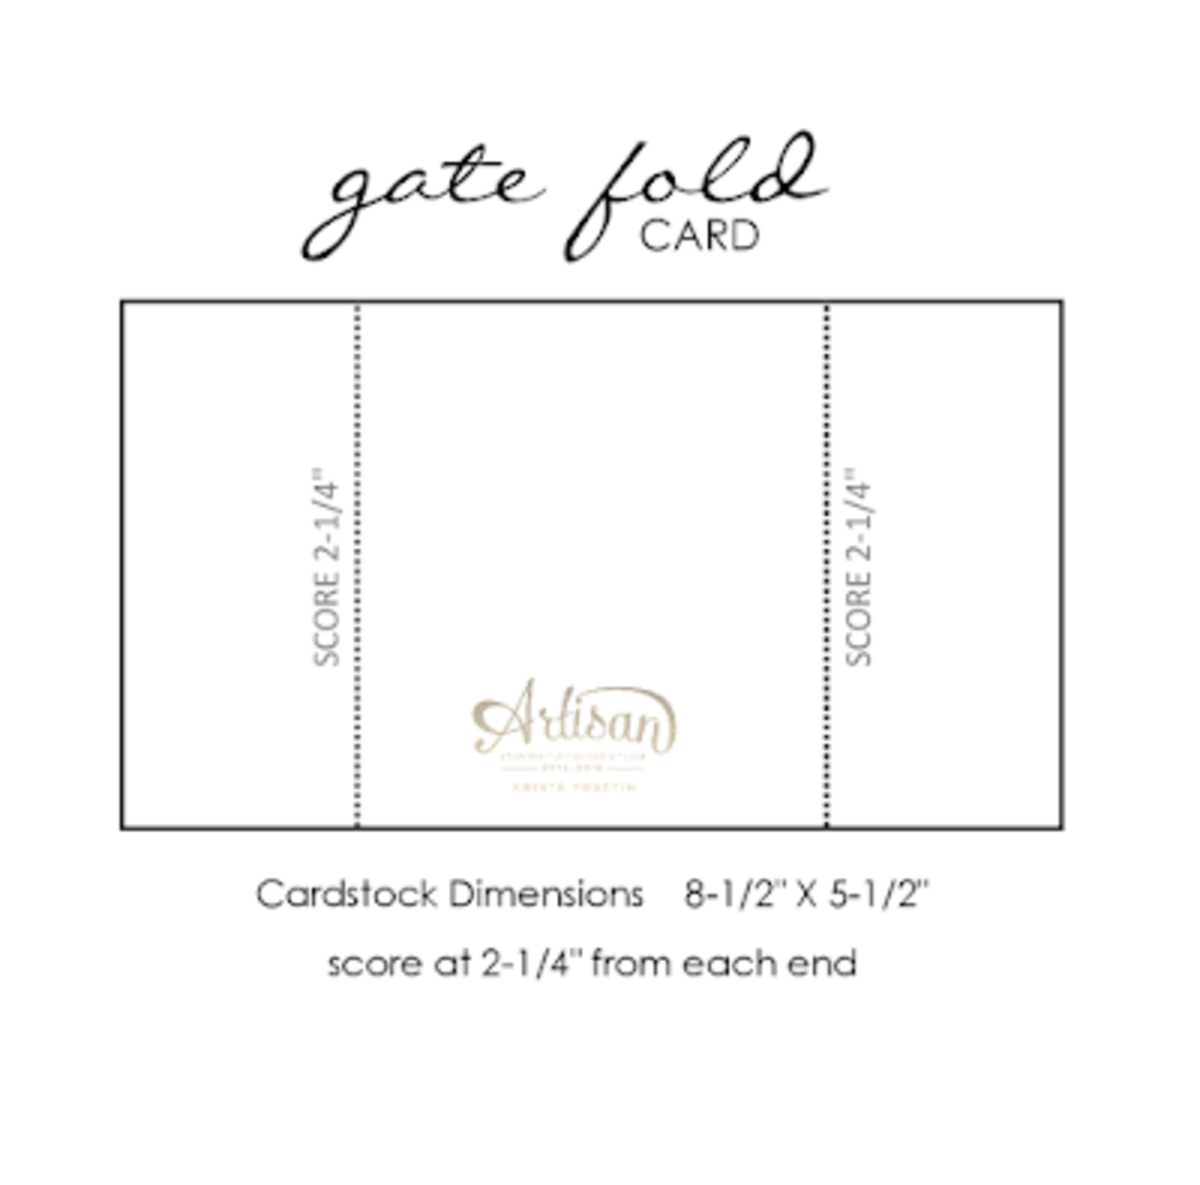 Basic gate fold card is easy to make and fun to decorate